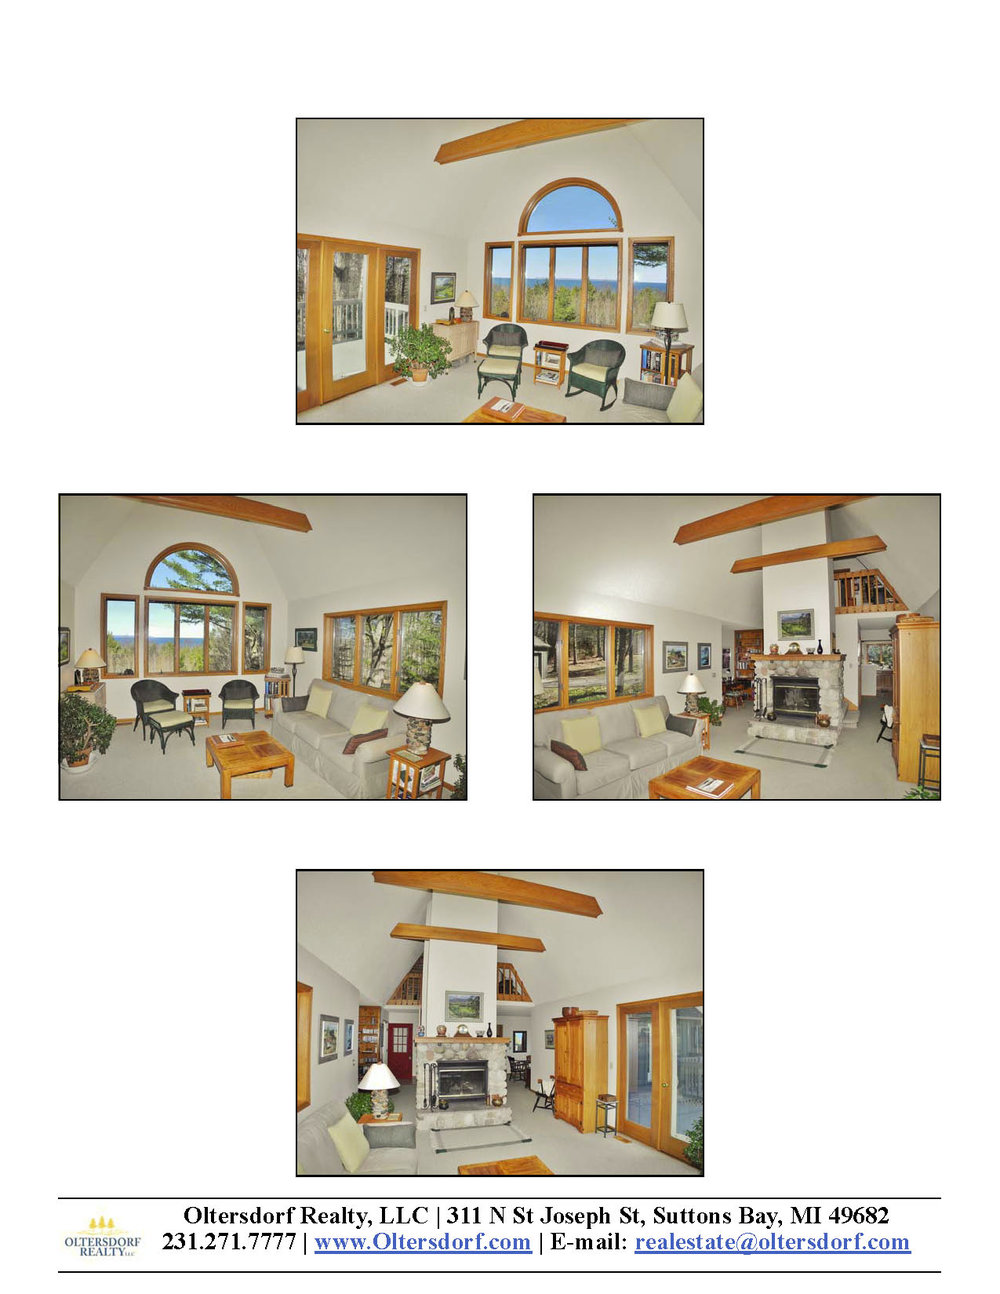 564 S Woodsmoke Drive, Lake Leelanau, MI – Sunset Lake Michigan Water Views - For Sale by Oltersdorf Realty - Marketing Packet (4).jpg